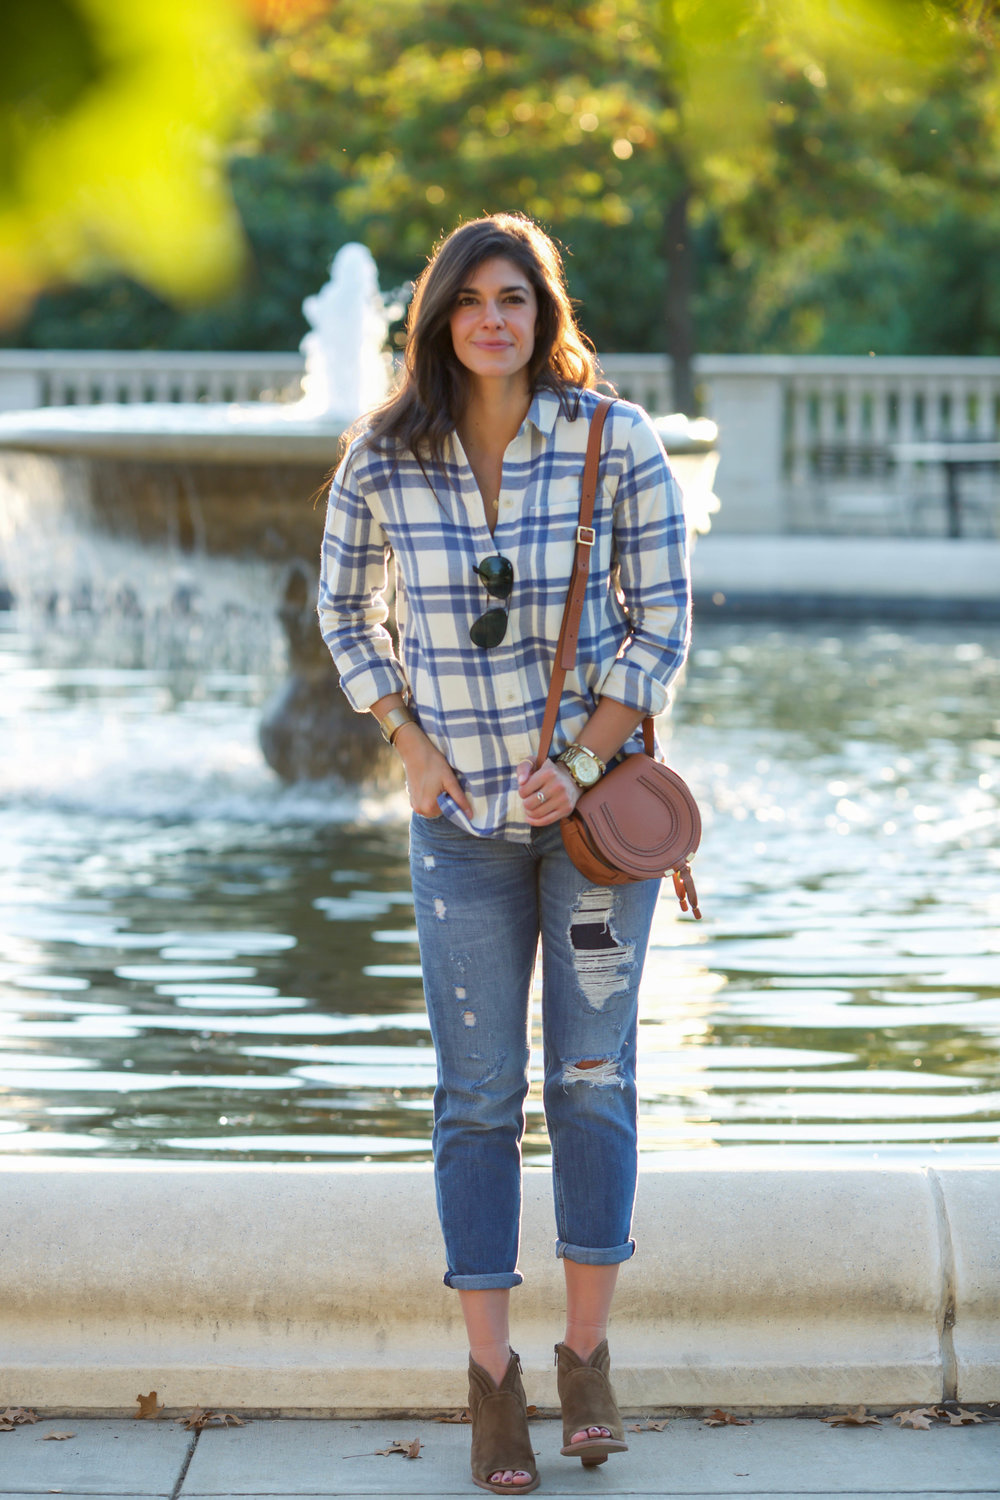 LaurenSchwaiger-Life-Style-Blog-Fall-Fashion-OOTD.jpg